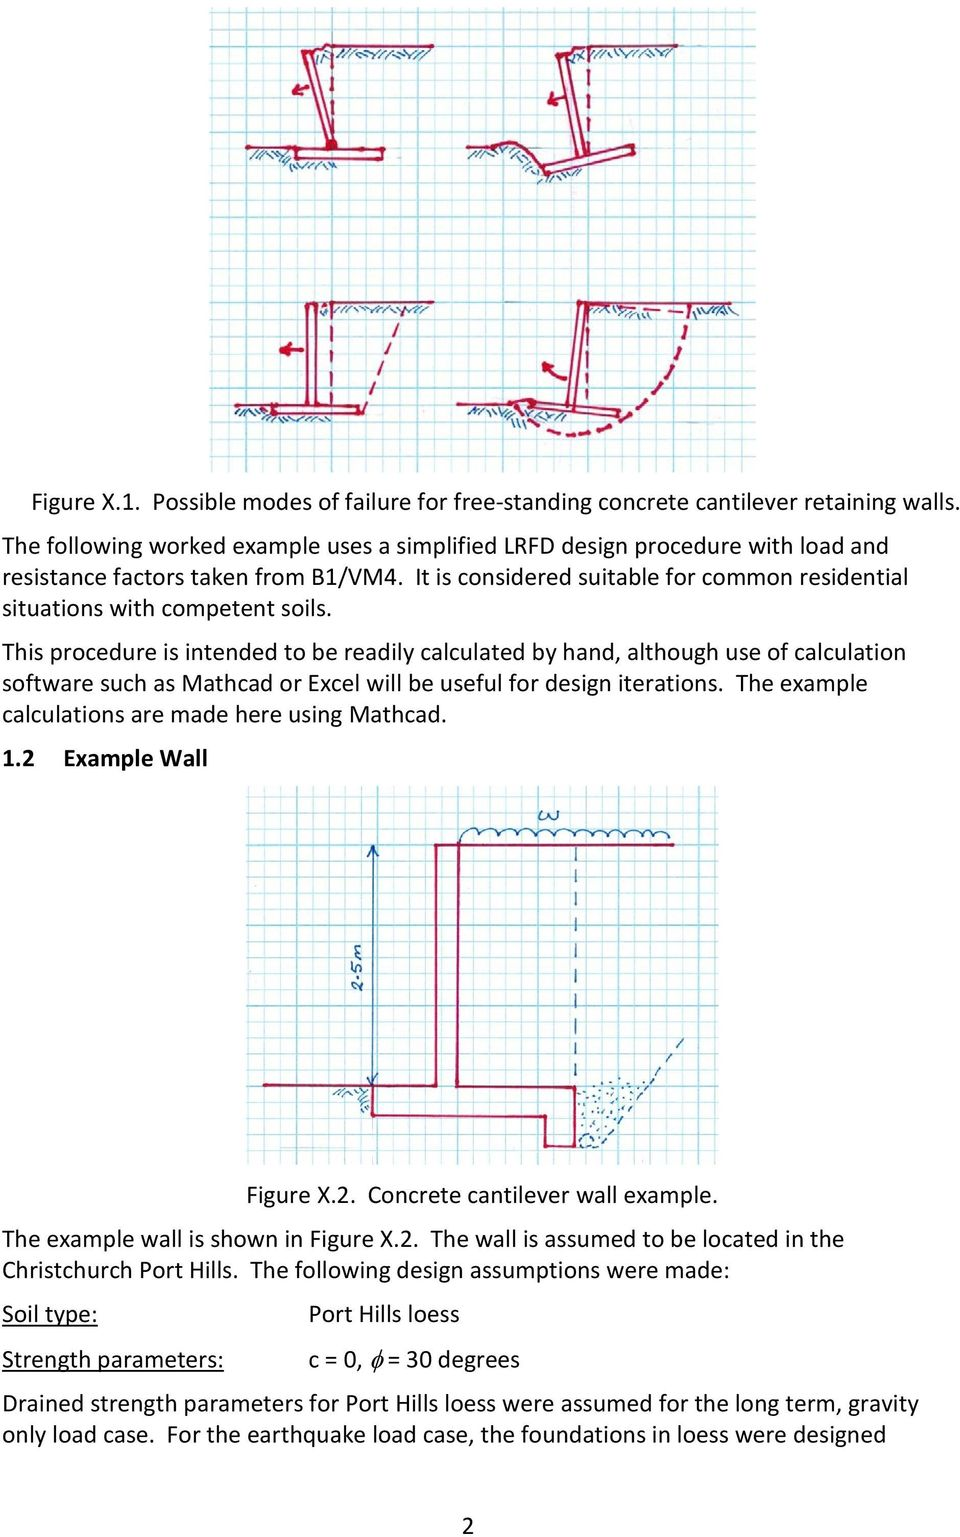 Worked Example 2 Version 1 Design Of Concrete Cantilever Retaining Walls To Resist Earthquake Loading For Residential Sites Pdf Free Download